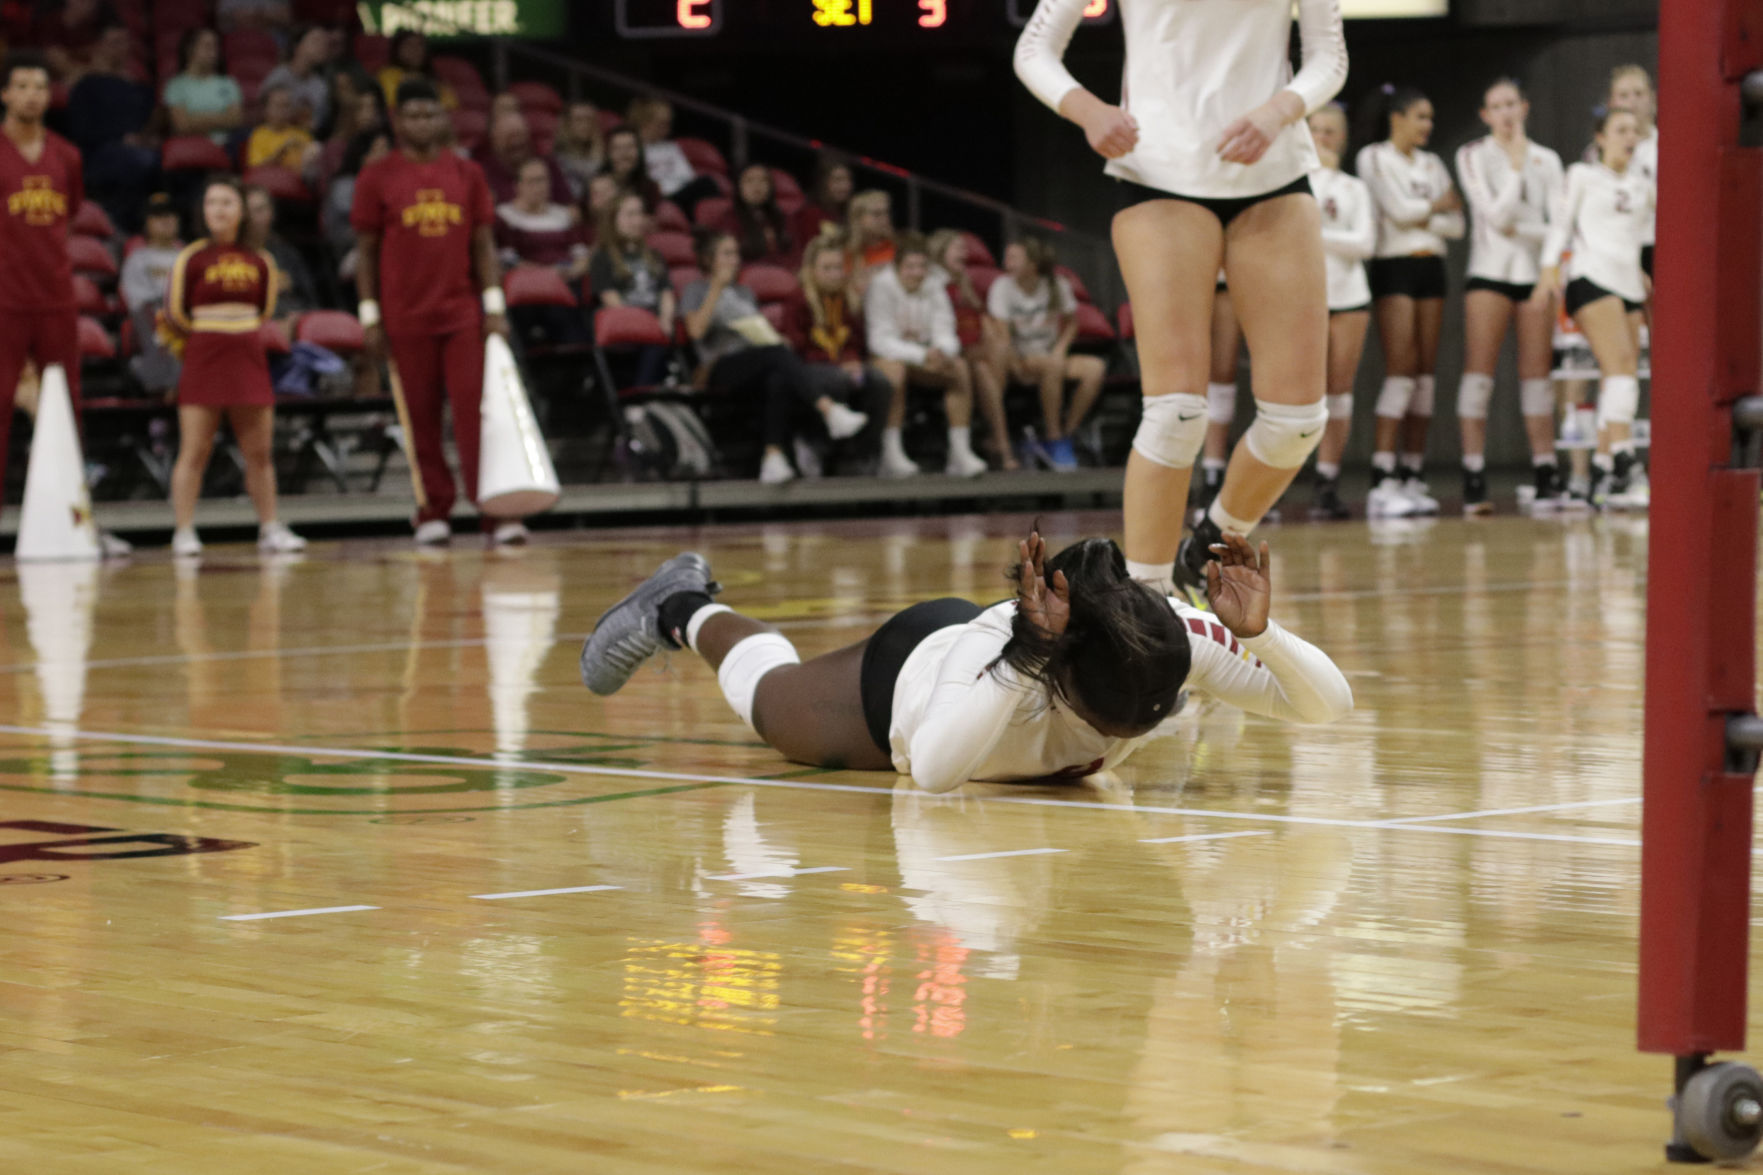 Big 12 roundup: Kempt, Iowa State stun No. 3 Oklahoma